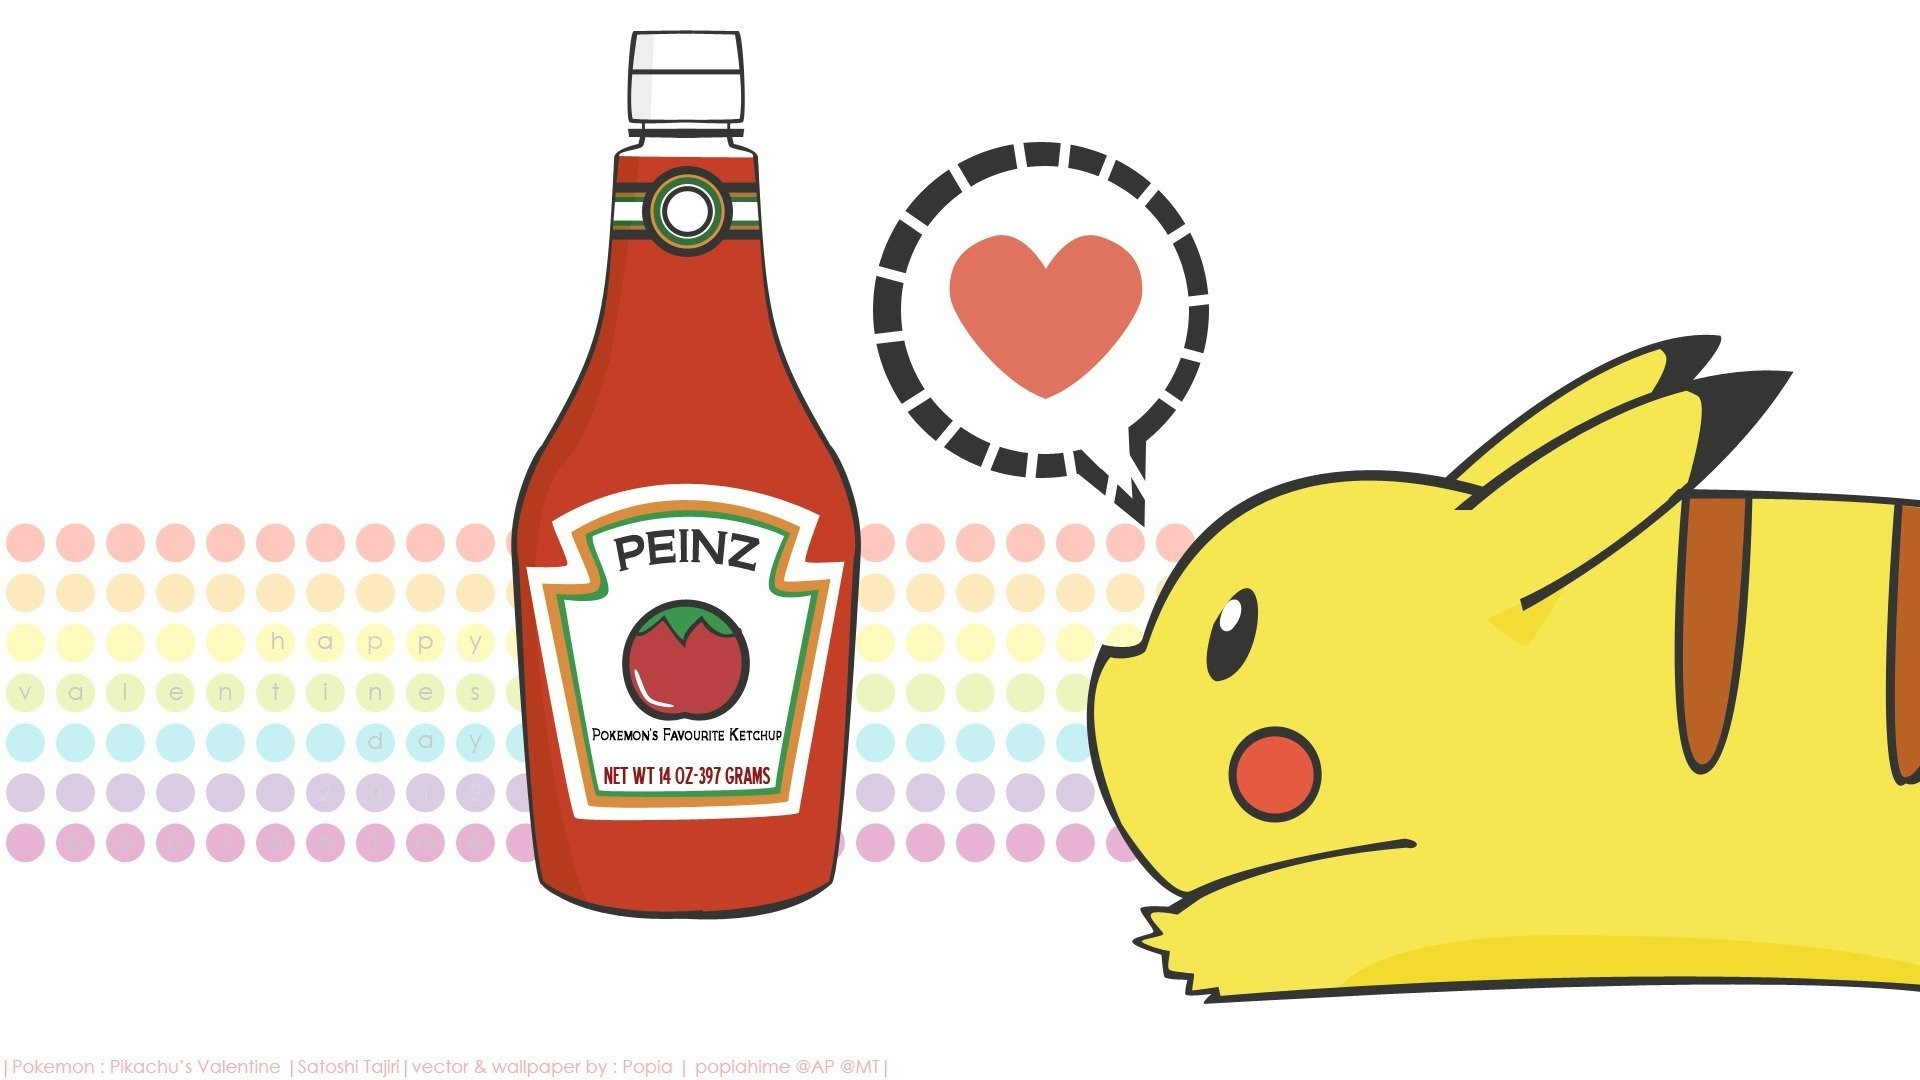 1920x1080 pikachu with ketchup wallpaper id: 73185 / Source. This pikachu with  ketchup wallpaper ...